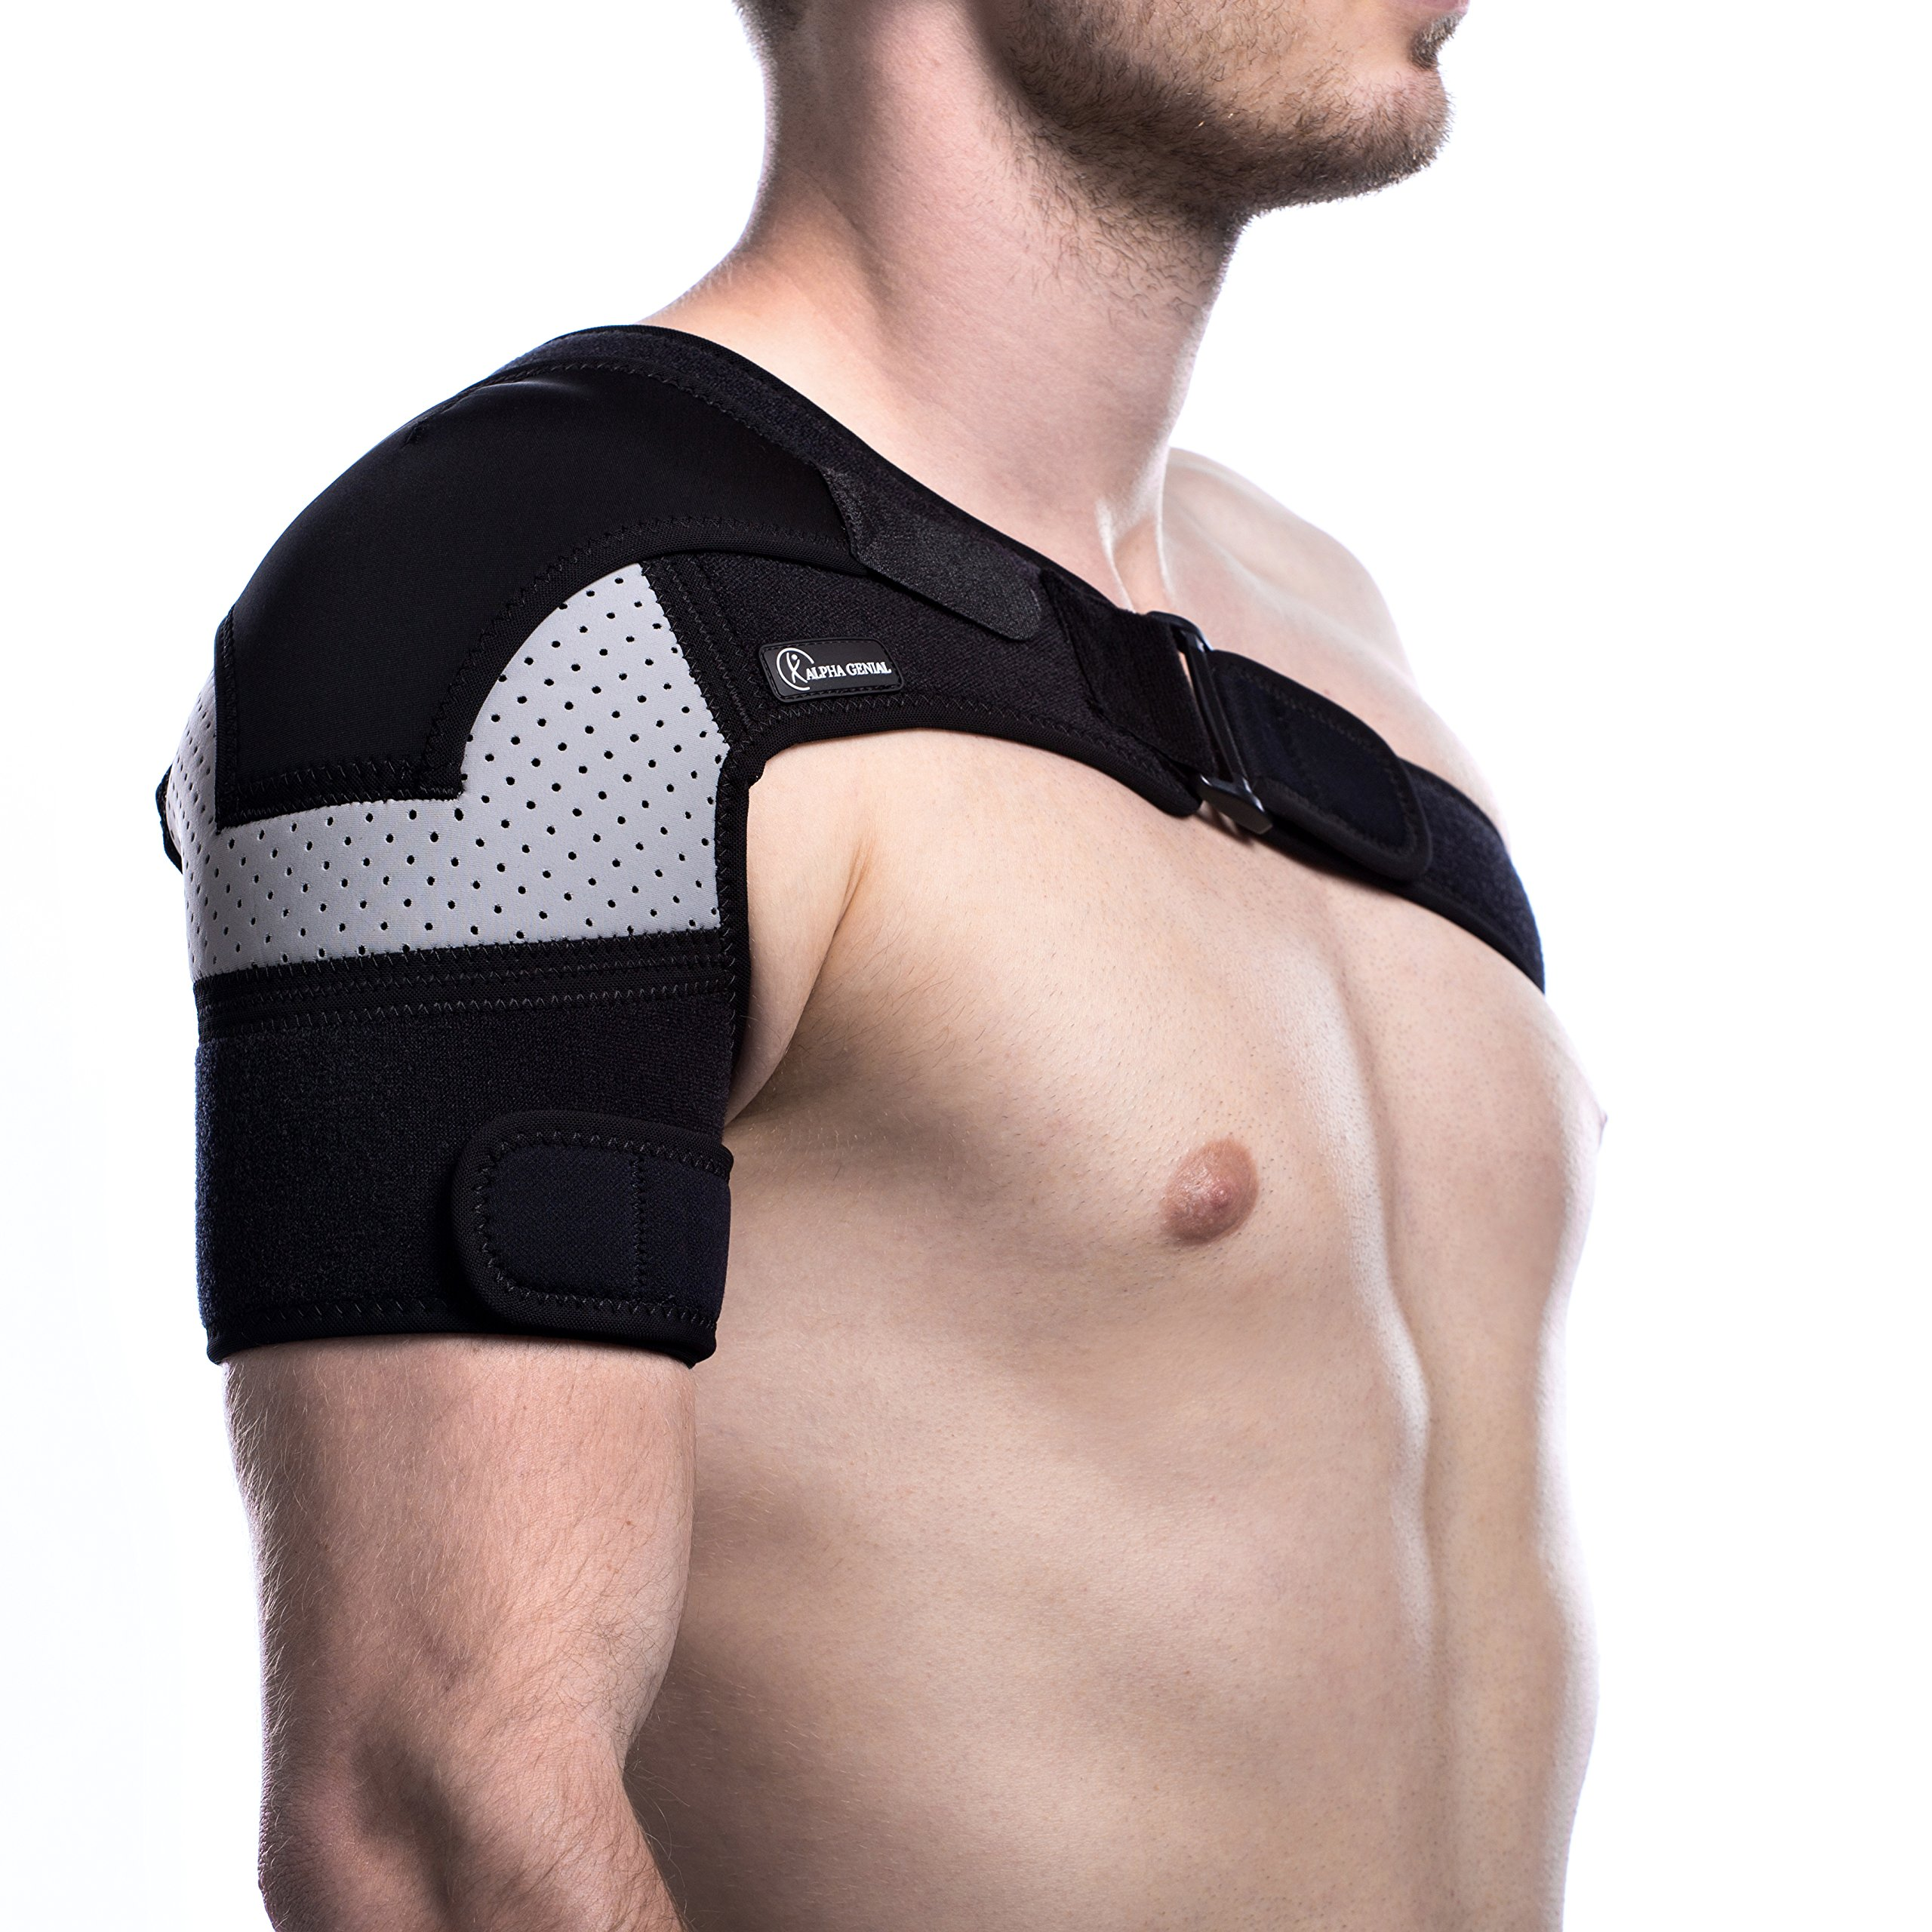 Shoulder Brace - Rotator Cuff Pain Relief Support for Men and Women, with Adjustable Belt and Sleeve, Pressure Pad for hot or ice Pack, for Injuries Like Dislocated AC Joint, Frozen Shoulder and More